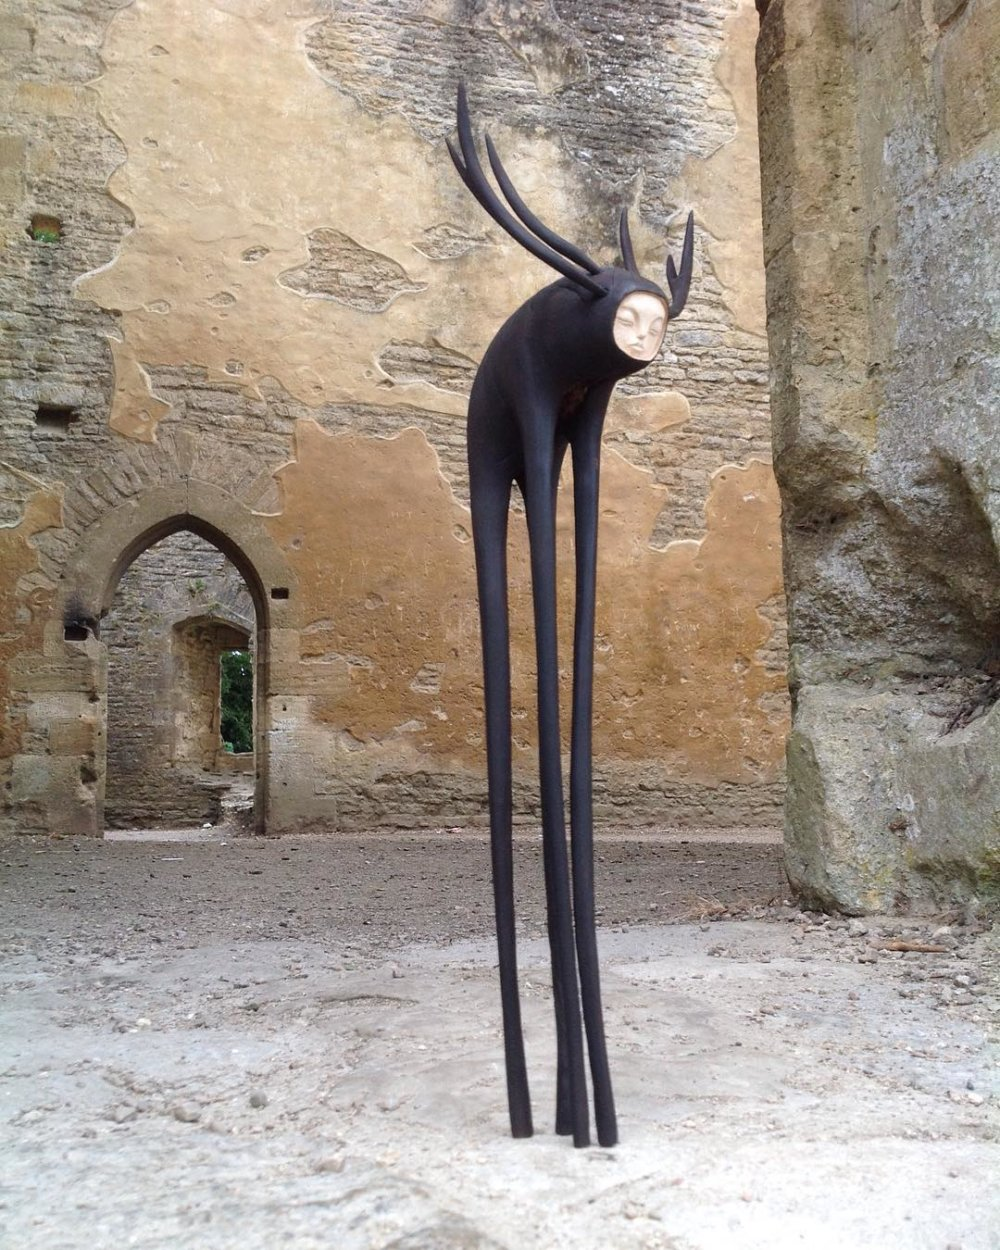 Magic Creatures With Long Limbs Made Out Of Oak Tree Roots By Tach Pollard 7